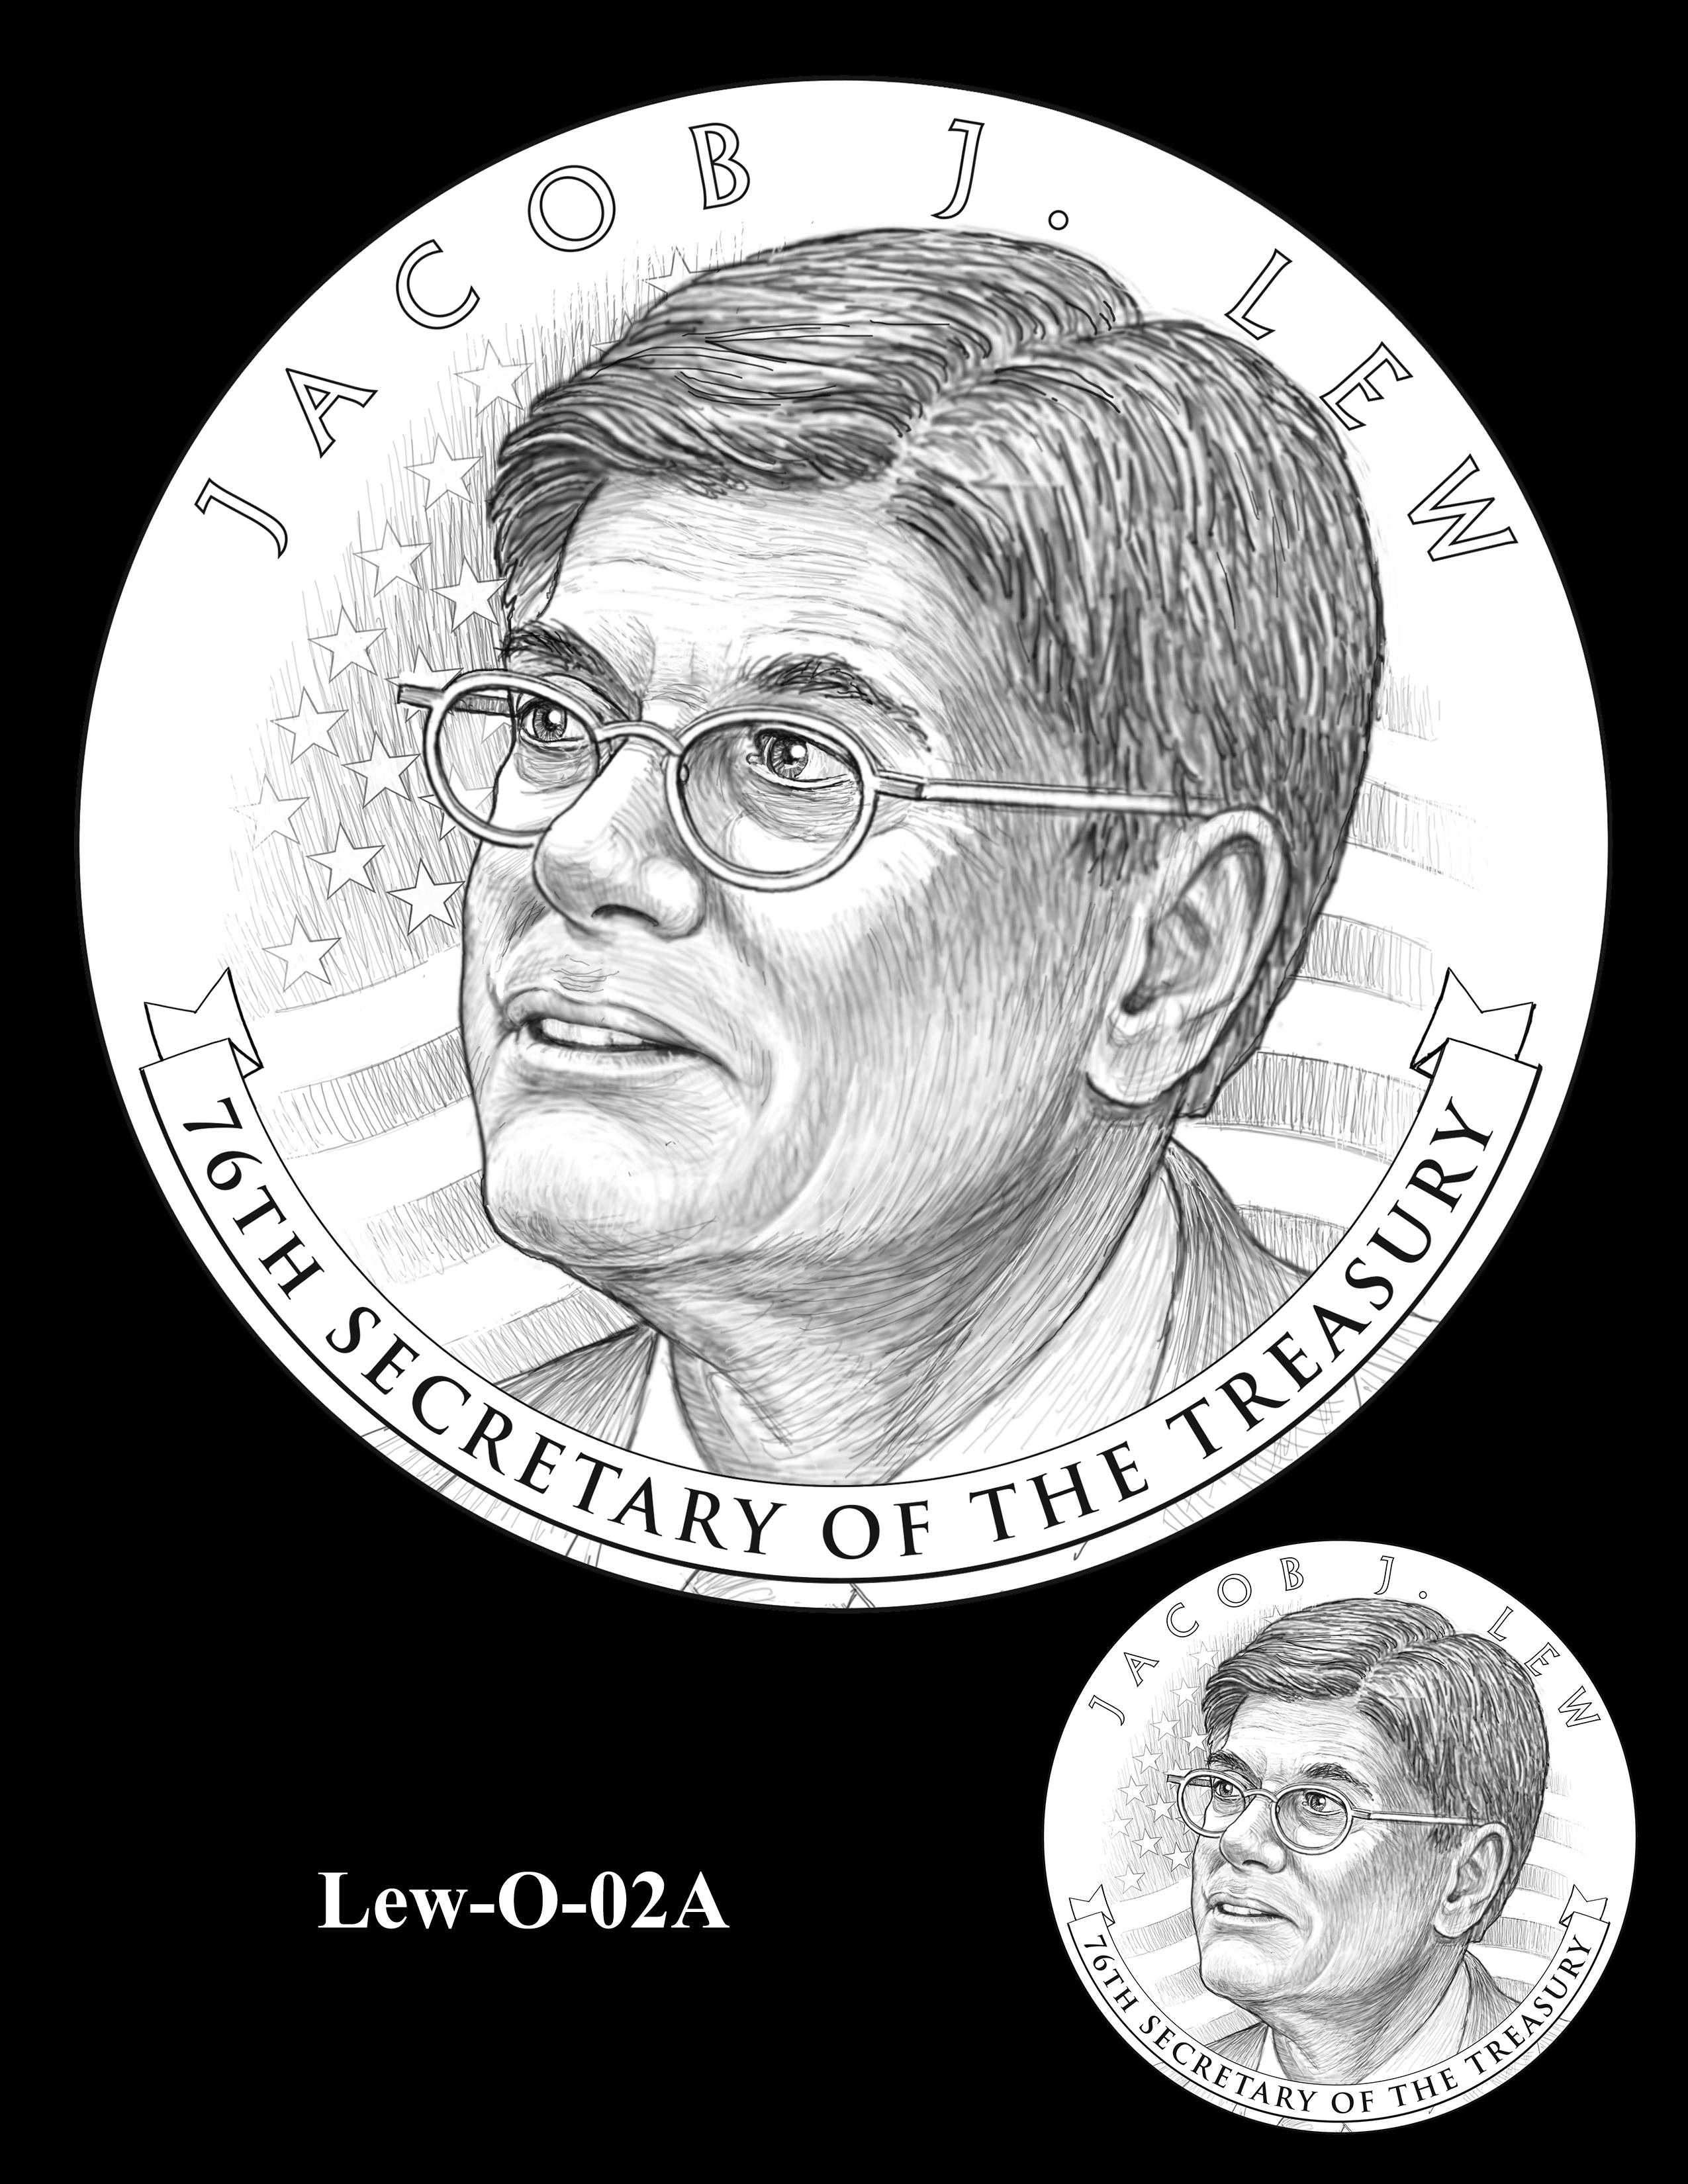 Lew-O-02A - Jacob J. Lew Secretary of the Treasury Medal Obverse